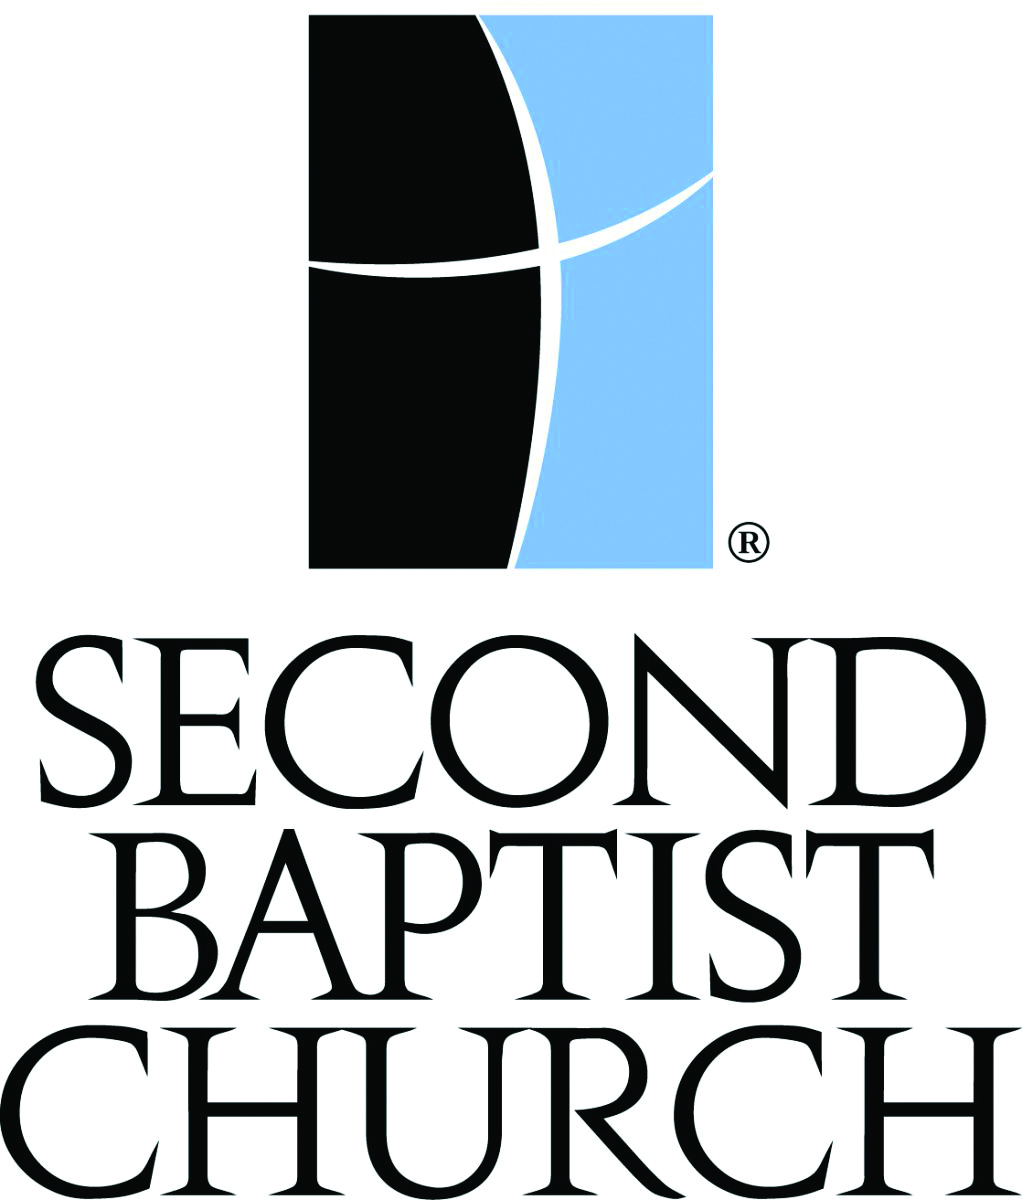 "SECOND BAPTIST CHURCH - Second Baptist Church is a large multi-site Church in Houston, Texas. Their mission is to fulfill Matthew 28:19-20, ""Go therefore and make disciples of all the nations, baptizing them in the name of the Father and the Son and the Holy Spirit, teaching them to observe all that I commanded you; and lo, I am with you always.""www.second.org"